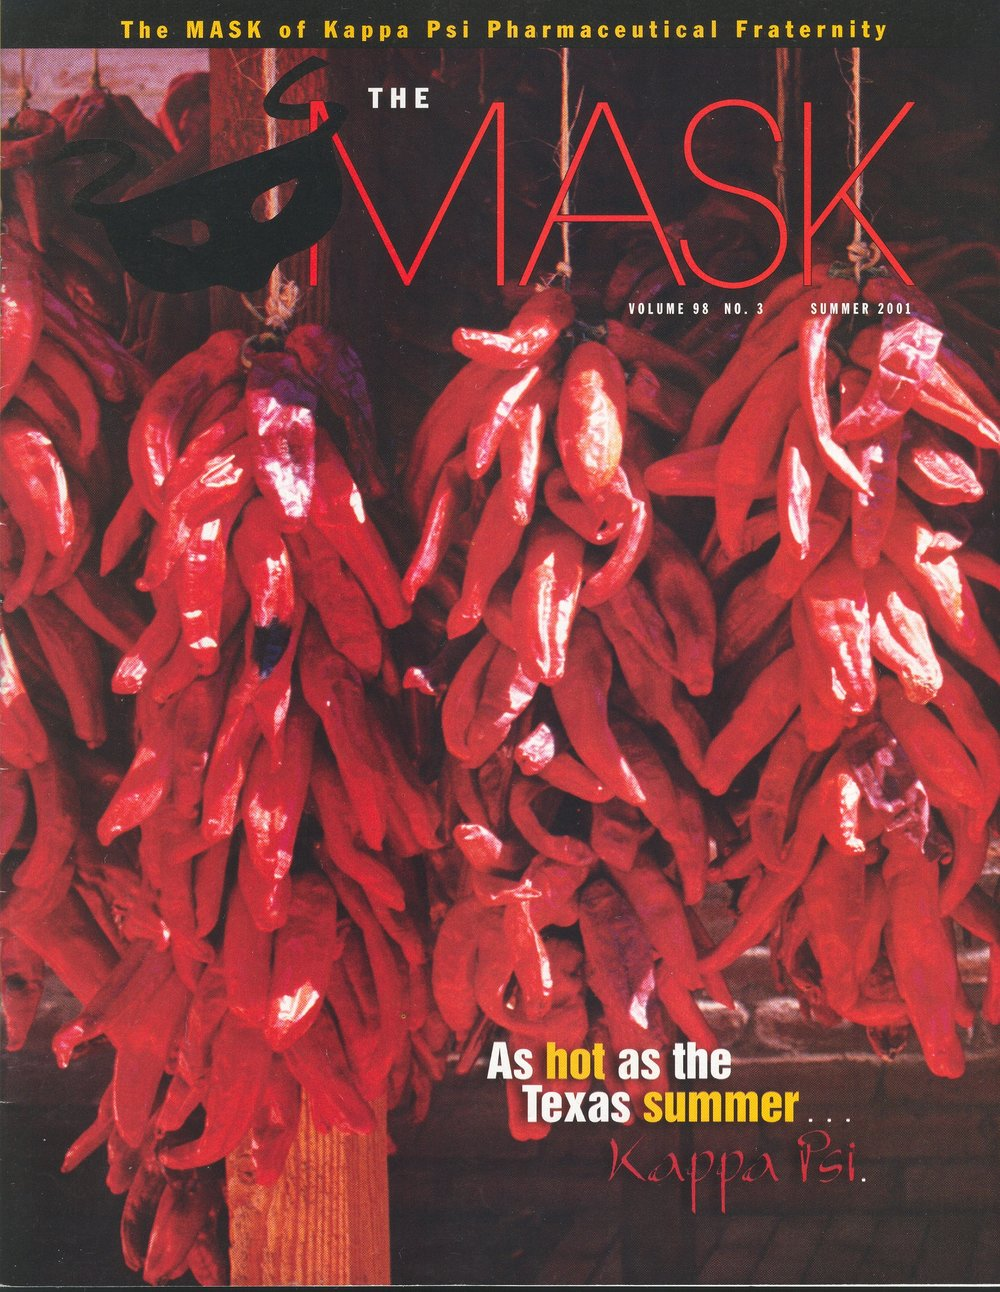 mask_cover_98-3_2001_sum.jpg